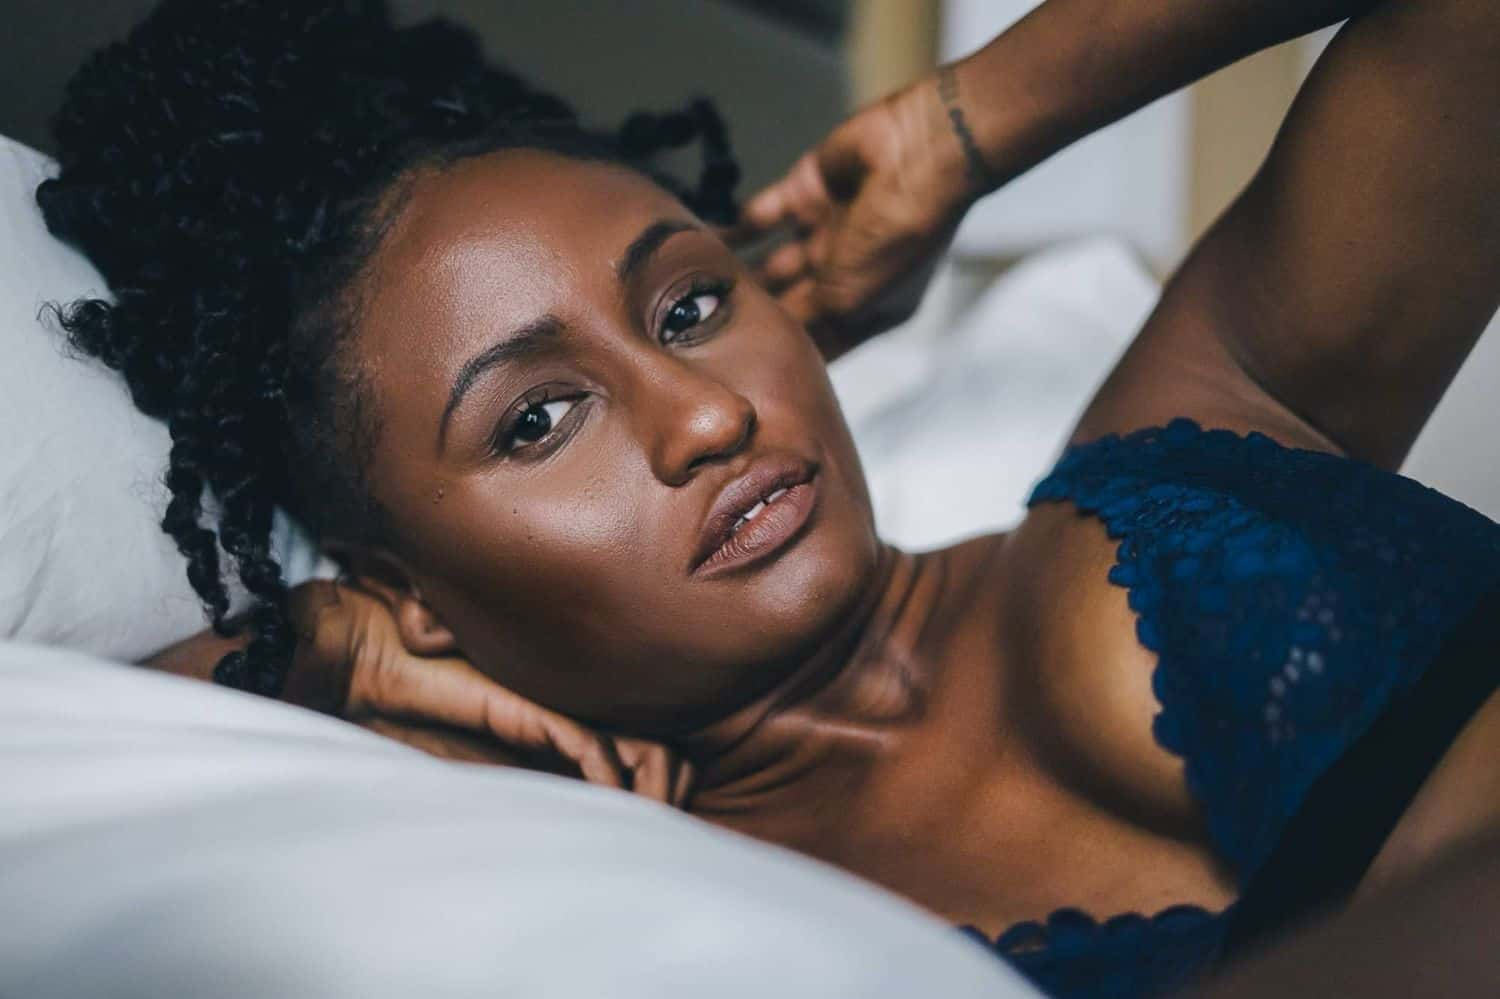 A Black model in blue lingerie poses for photographer Toni Black during a boudoir session on a white bed